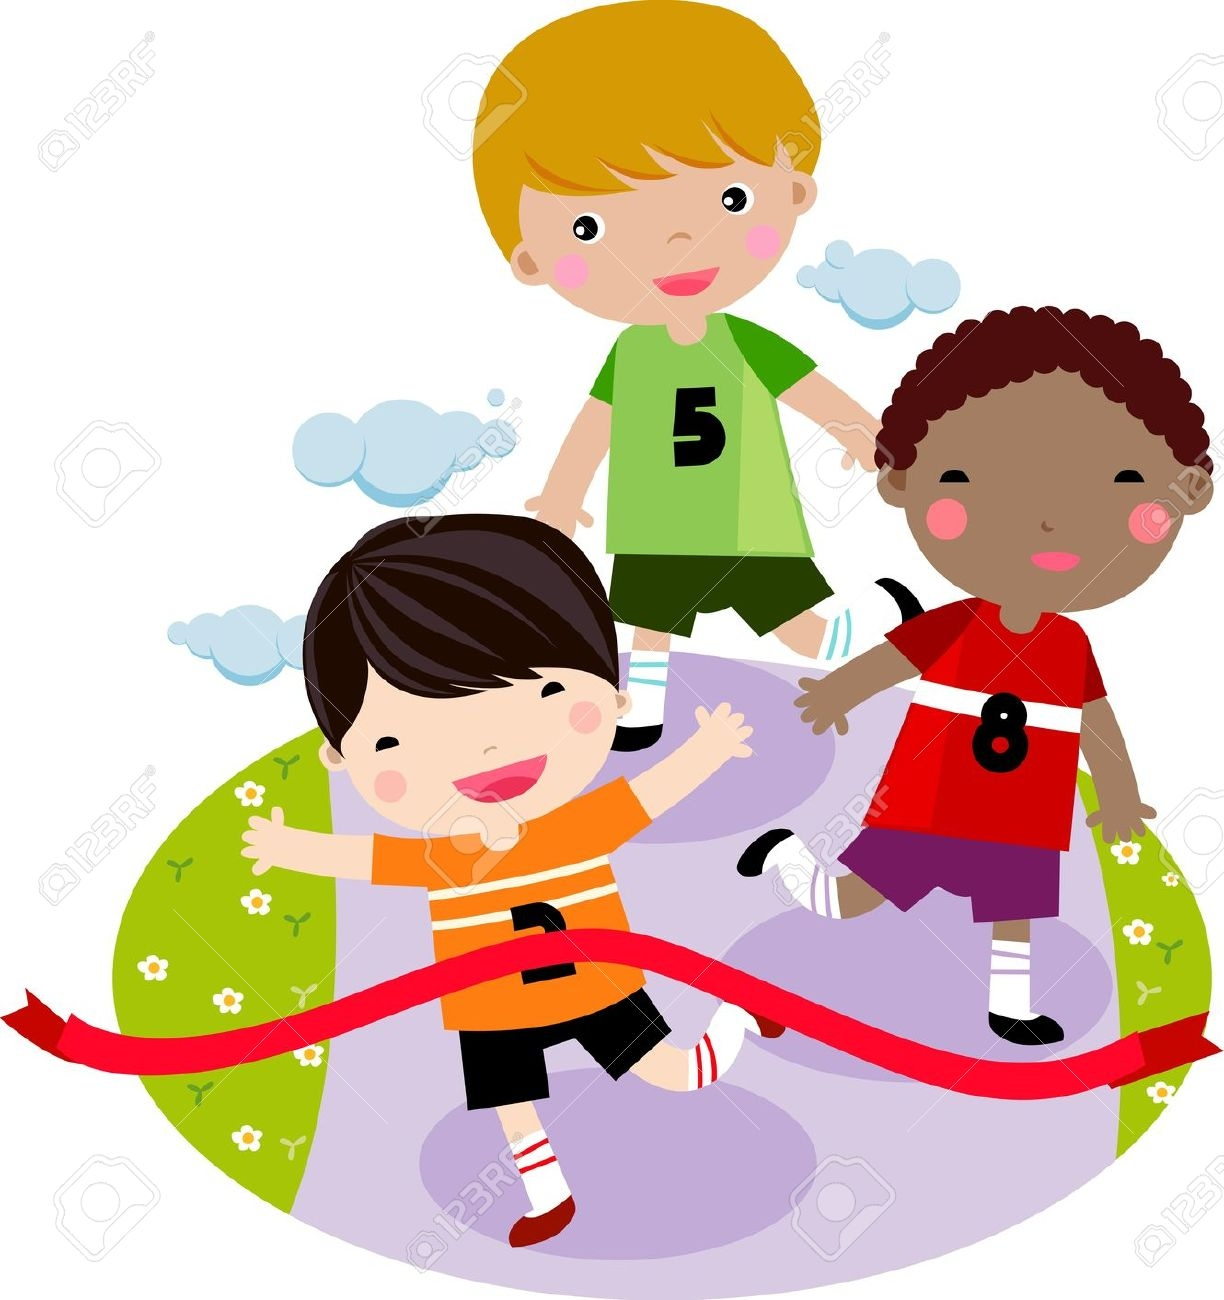 Race clipart kid fitness Free race kids clipart